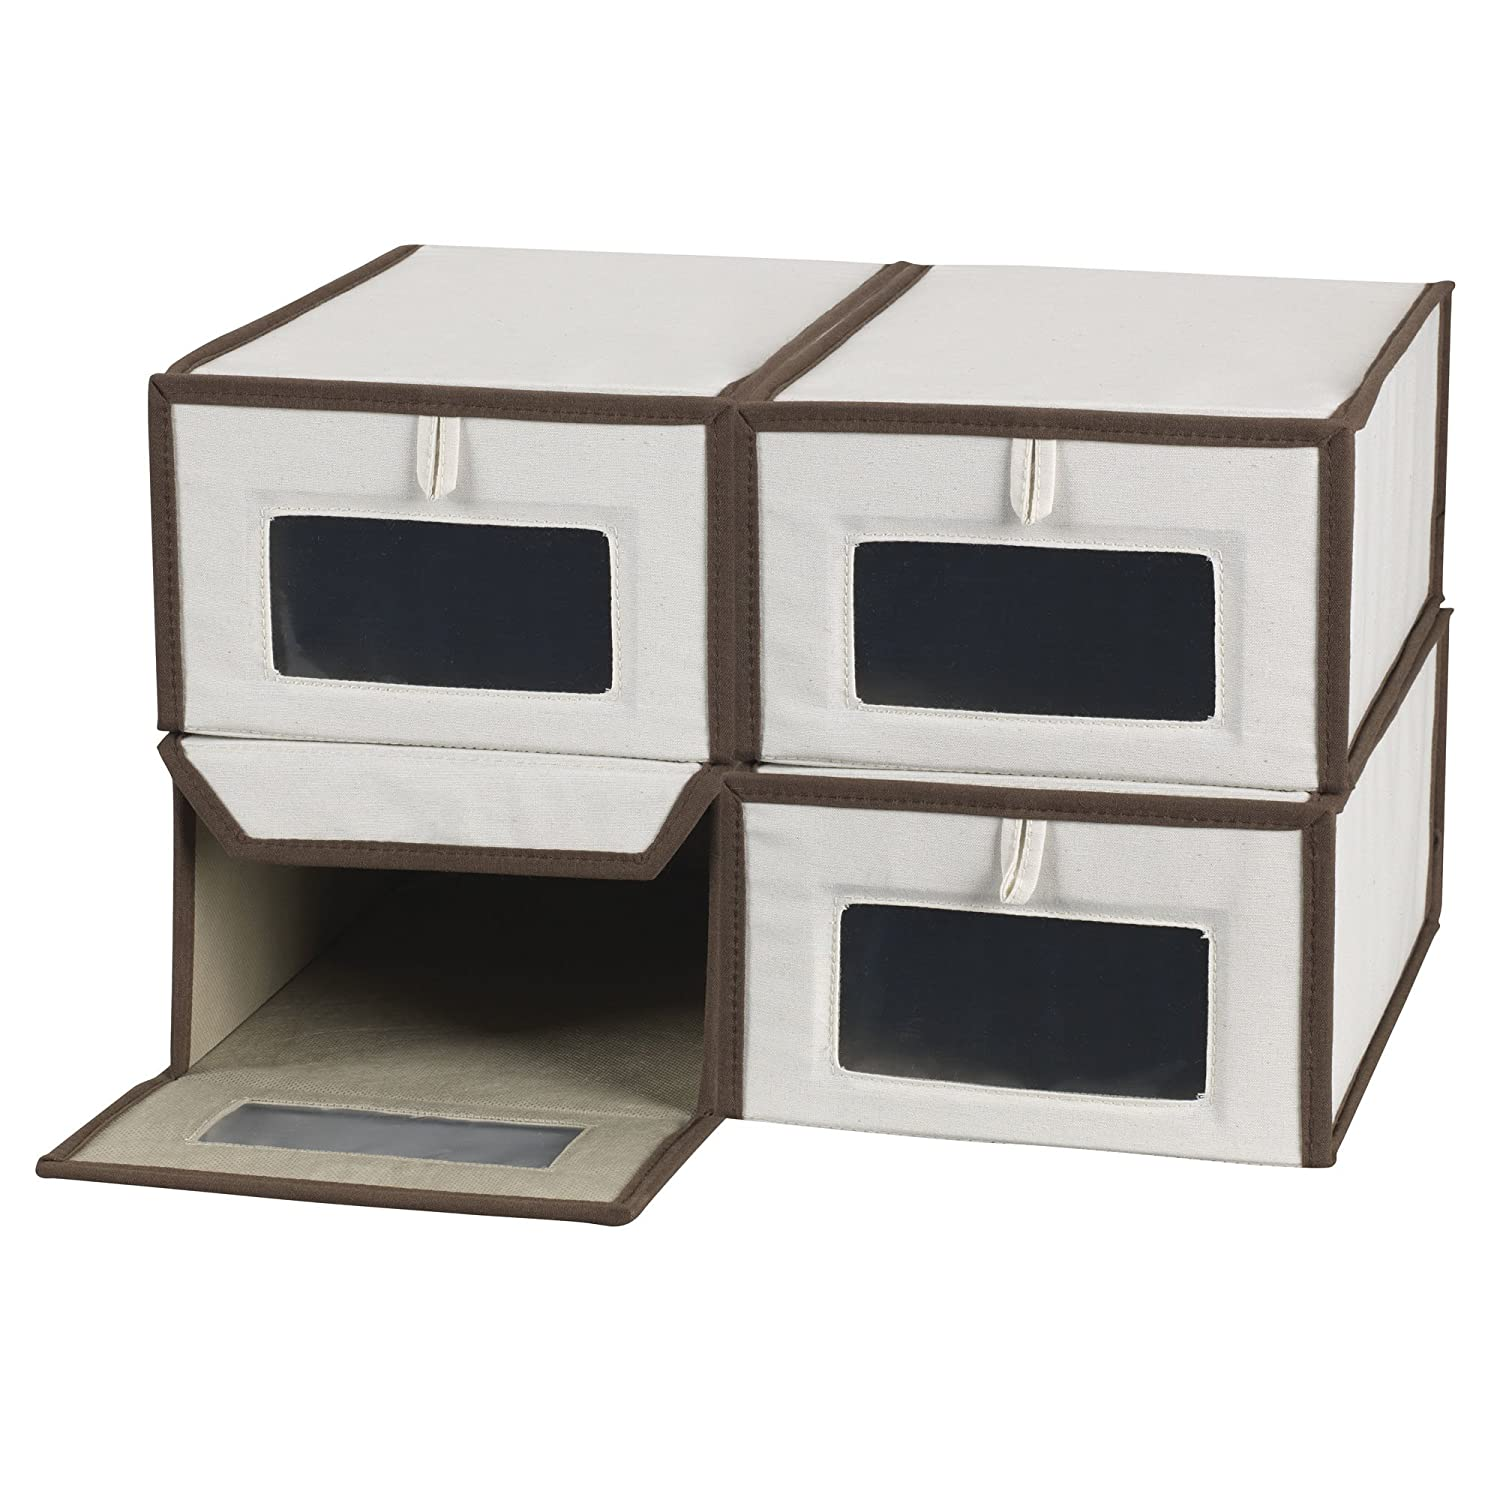 Household Essentials Set of Four Small Shoe Storage Boxes, Natural Canvas with Brown Trim Hosuehold Essentials 5200-4